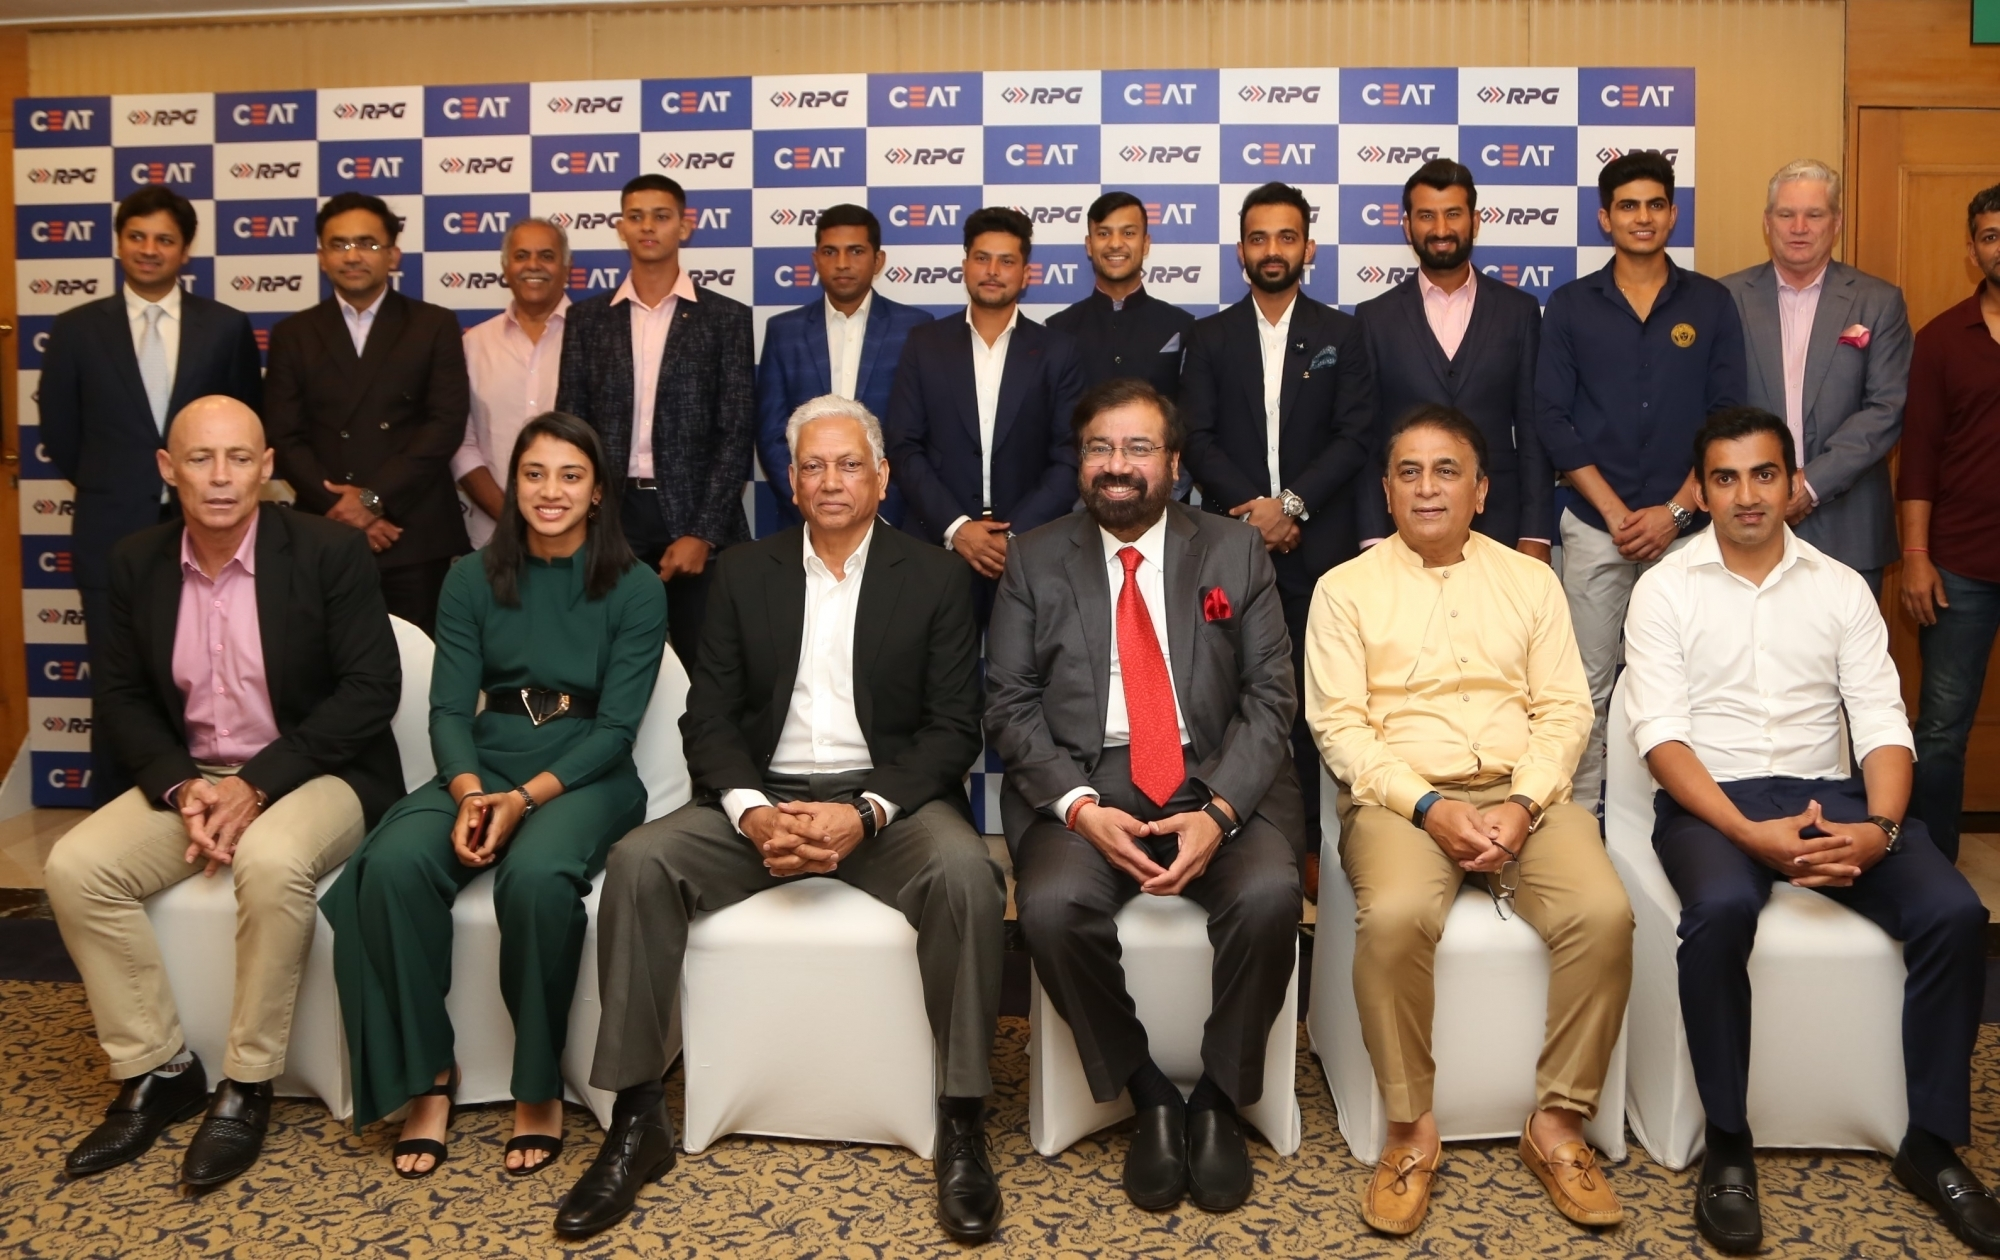 Mohinder Amarnath was bestowed with the lifetime achievement award at the CEAT Cricket Rating Awards | IANS